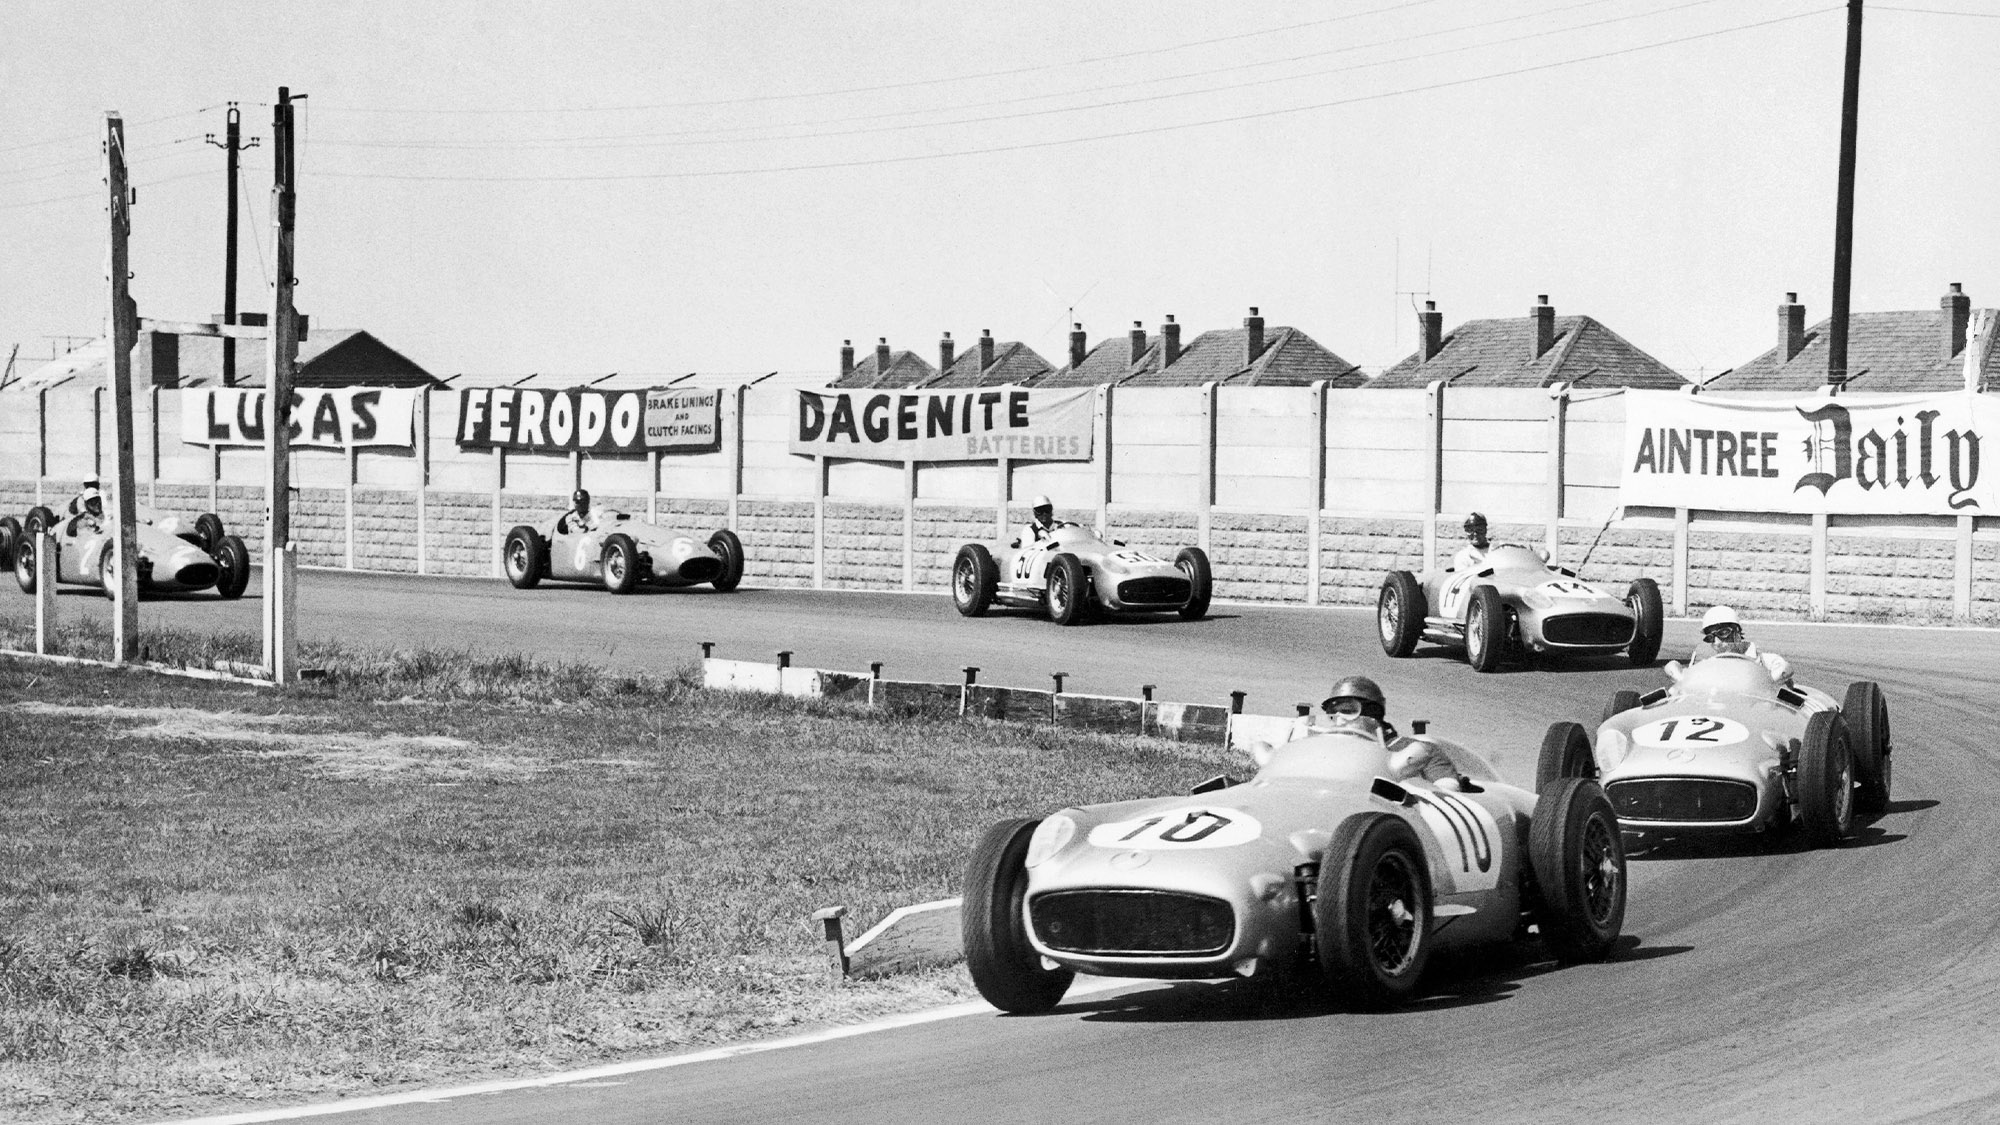 Juan Manuel Fangio leads at Aintree in the early laps of the 1955 F1 British Grand Prix